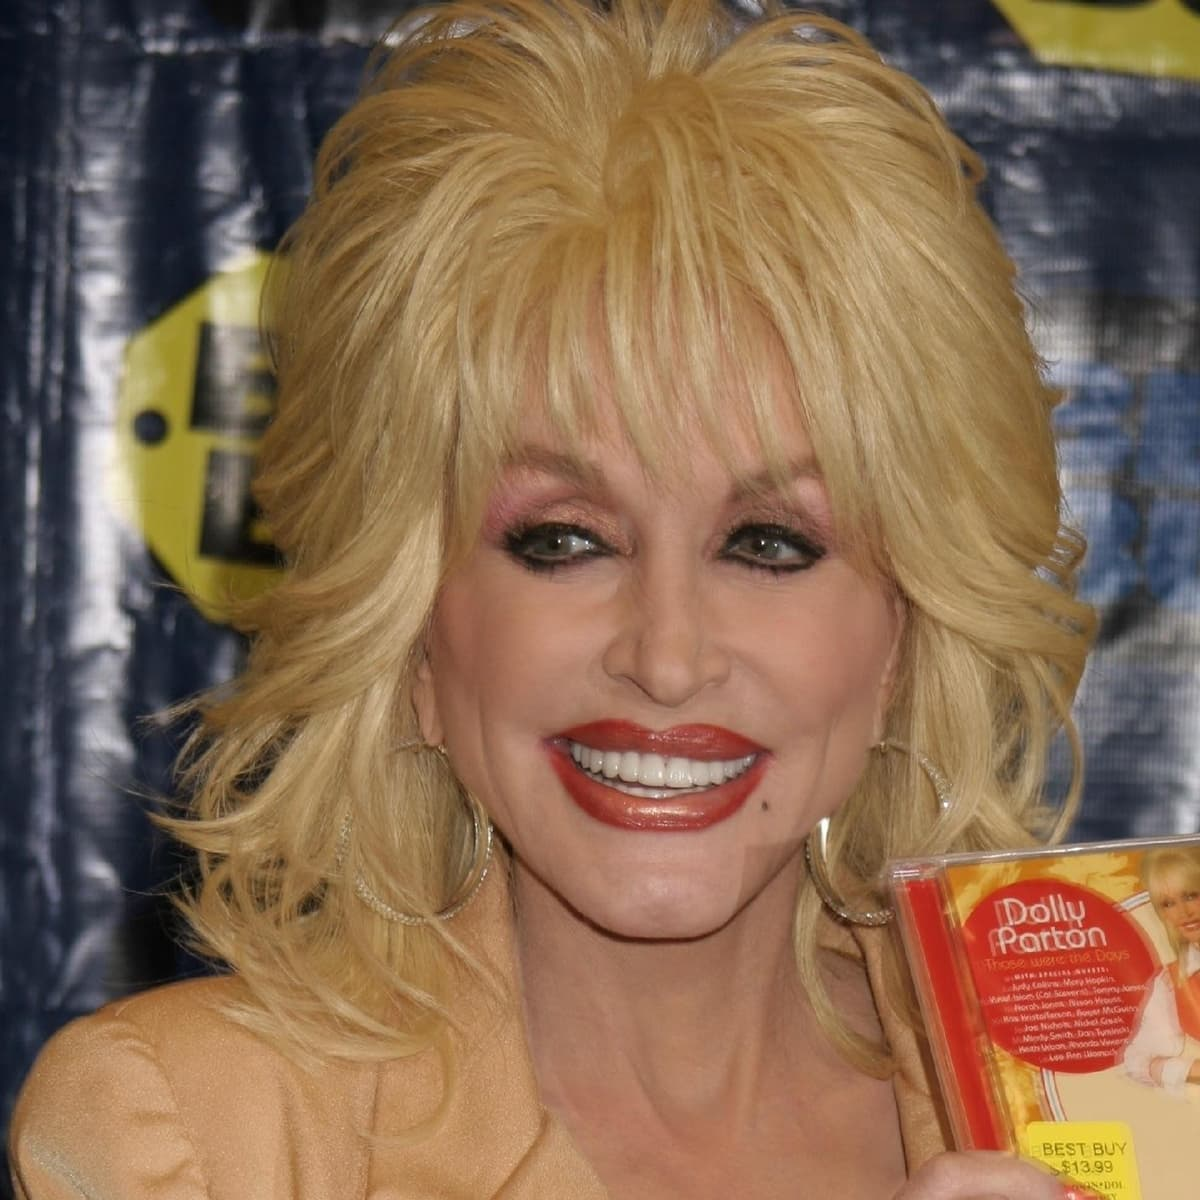 Dolly Parton has admitted to having her face rejuvenated on a number of occasions